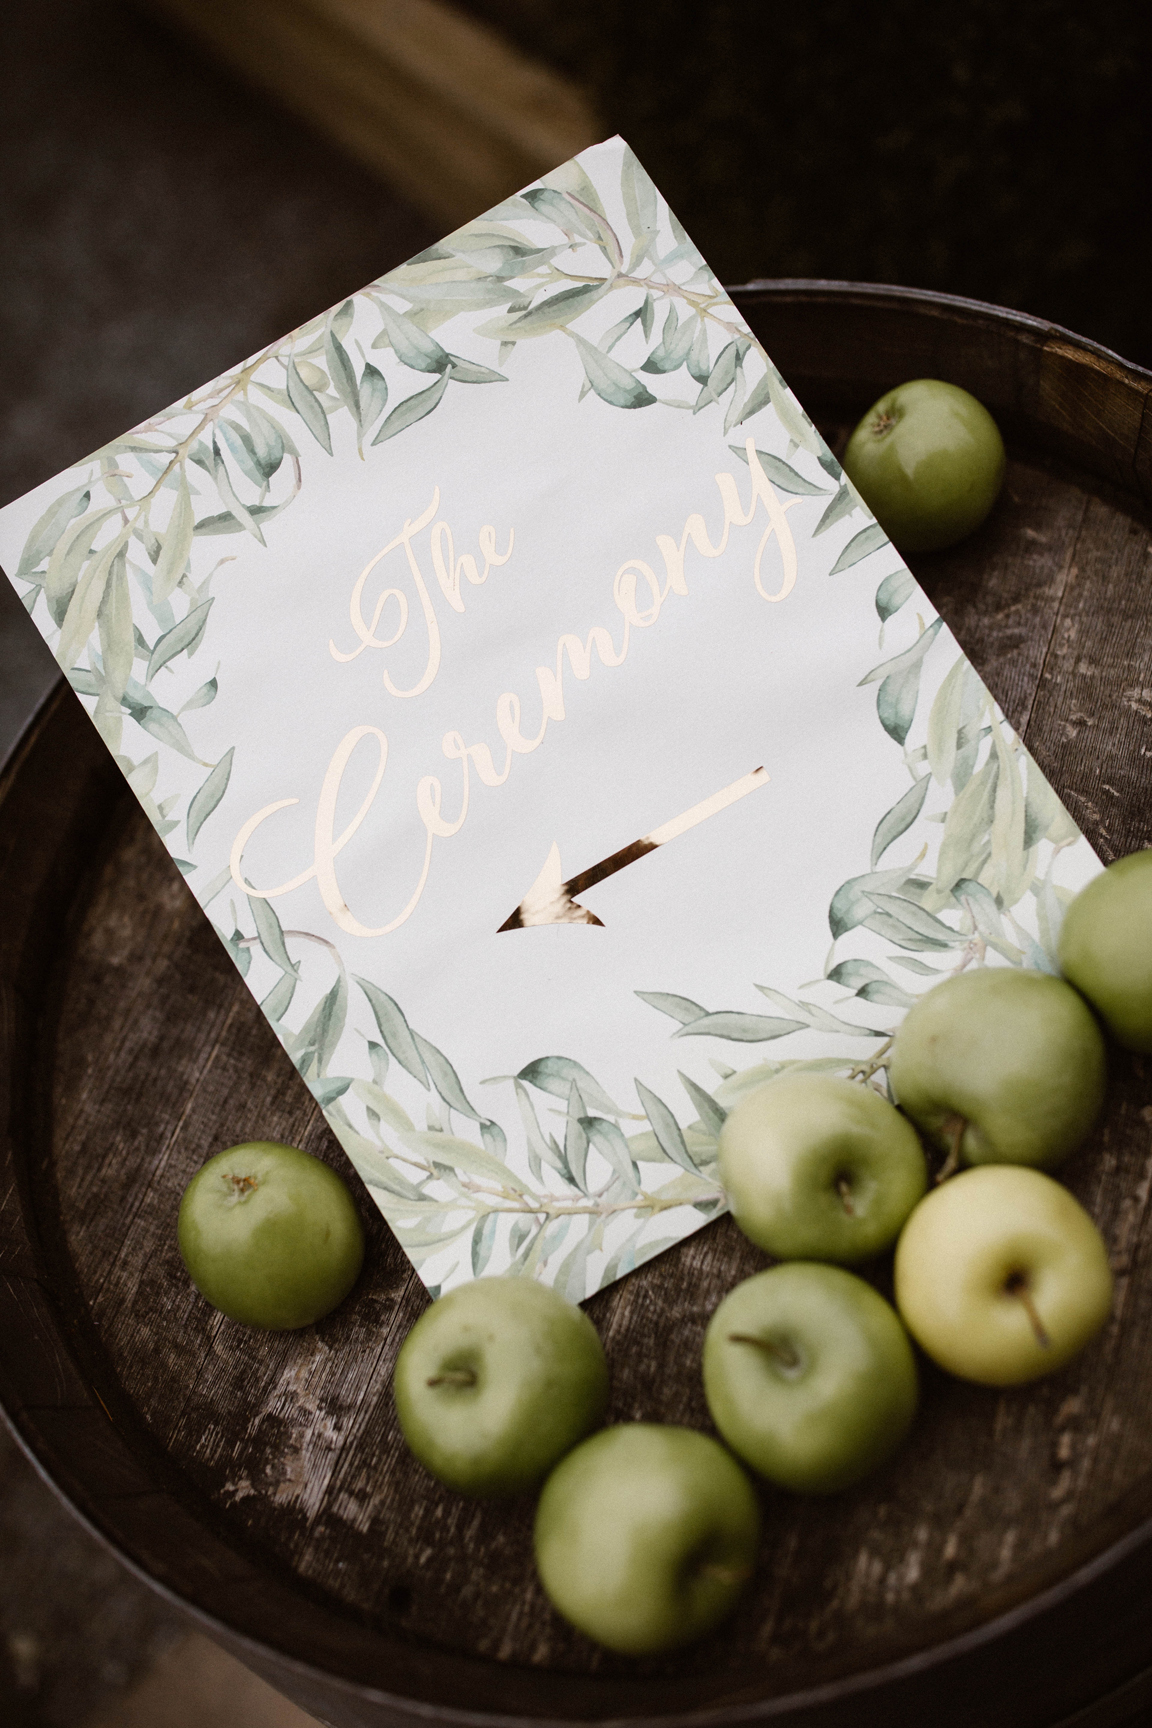 Willows+Lodge_Woodinville_2017_Weddings+In+Woodinville207.jpg